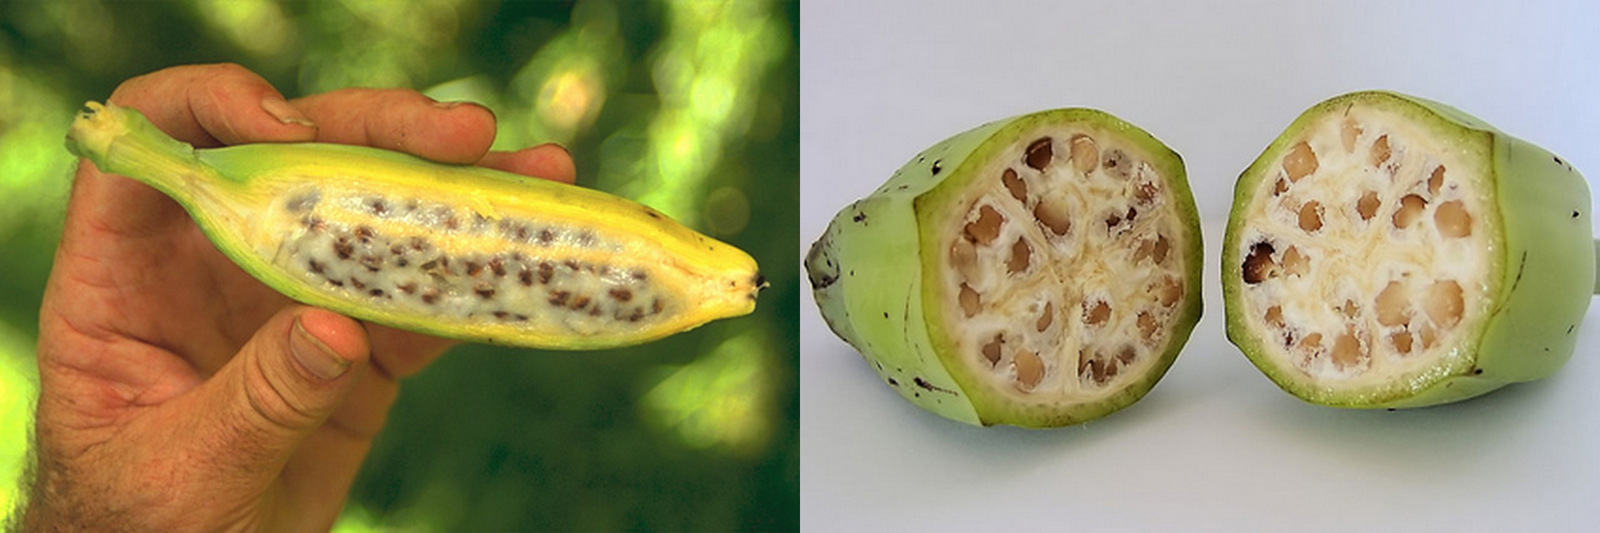 Fullsize Of Banana With Seeds